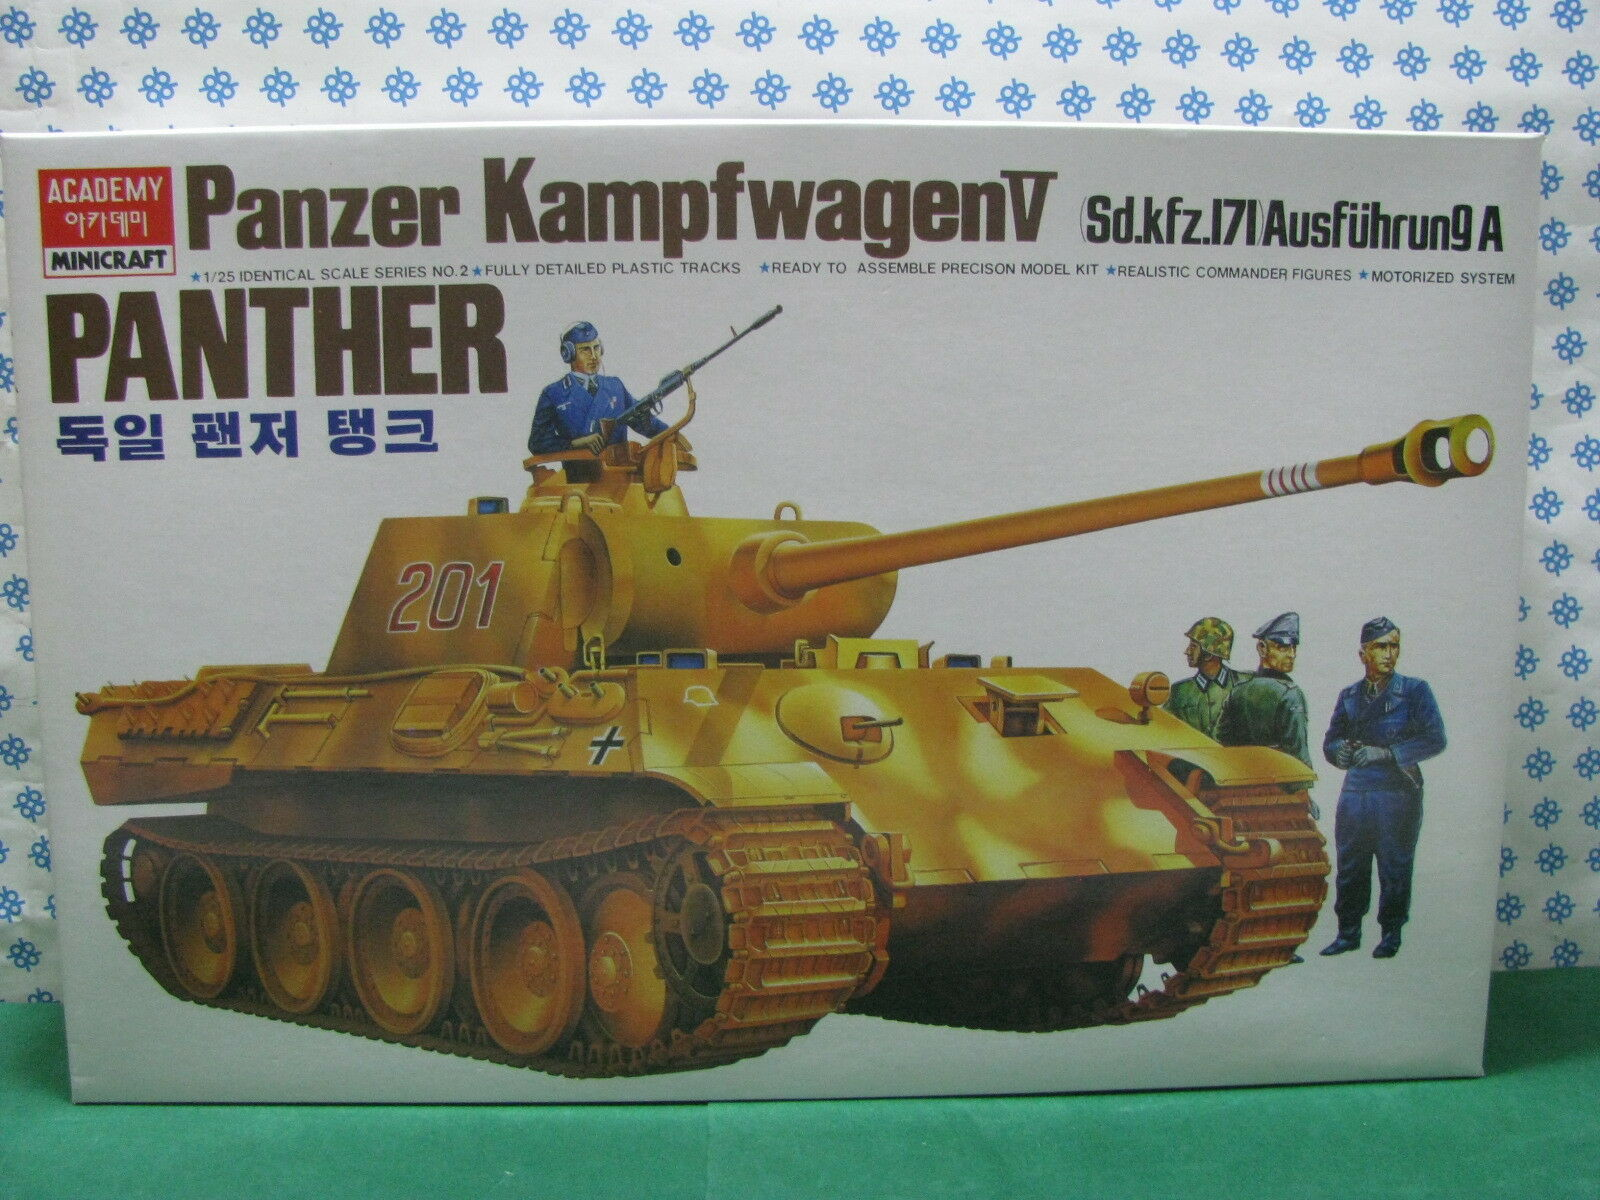 Vintage Model Kit  - PANZER Kampfwagen (sd.kfz.171) V Motorized - Academy